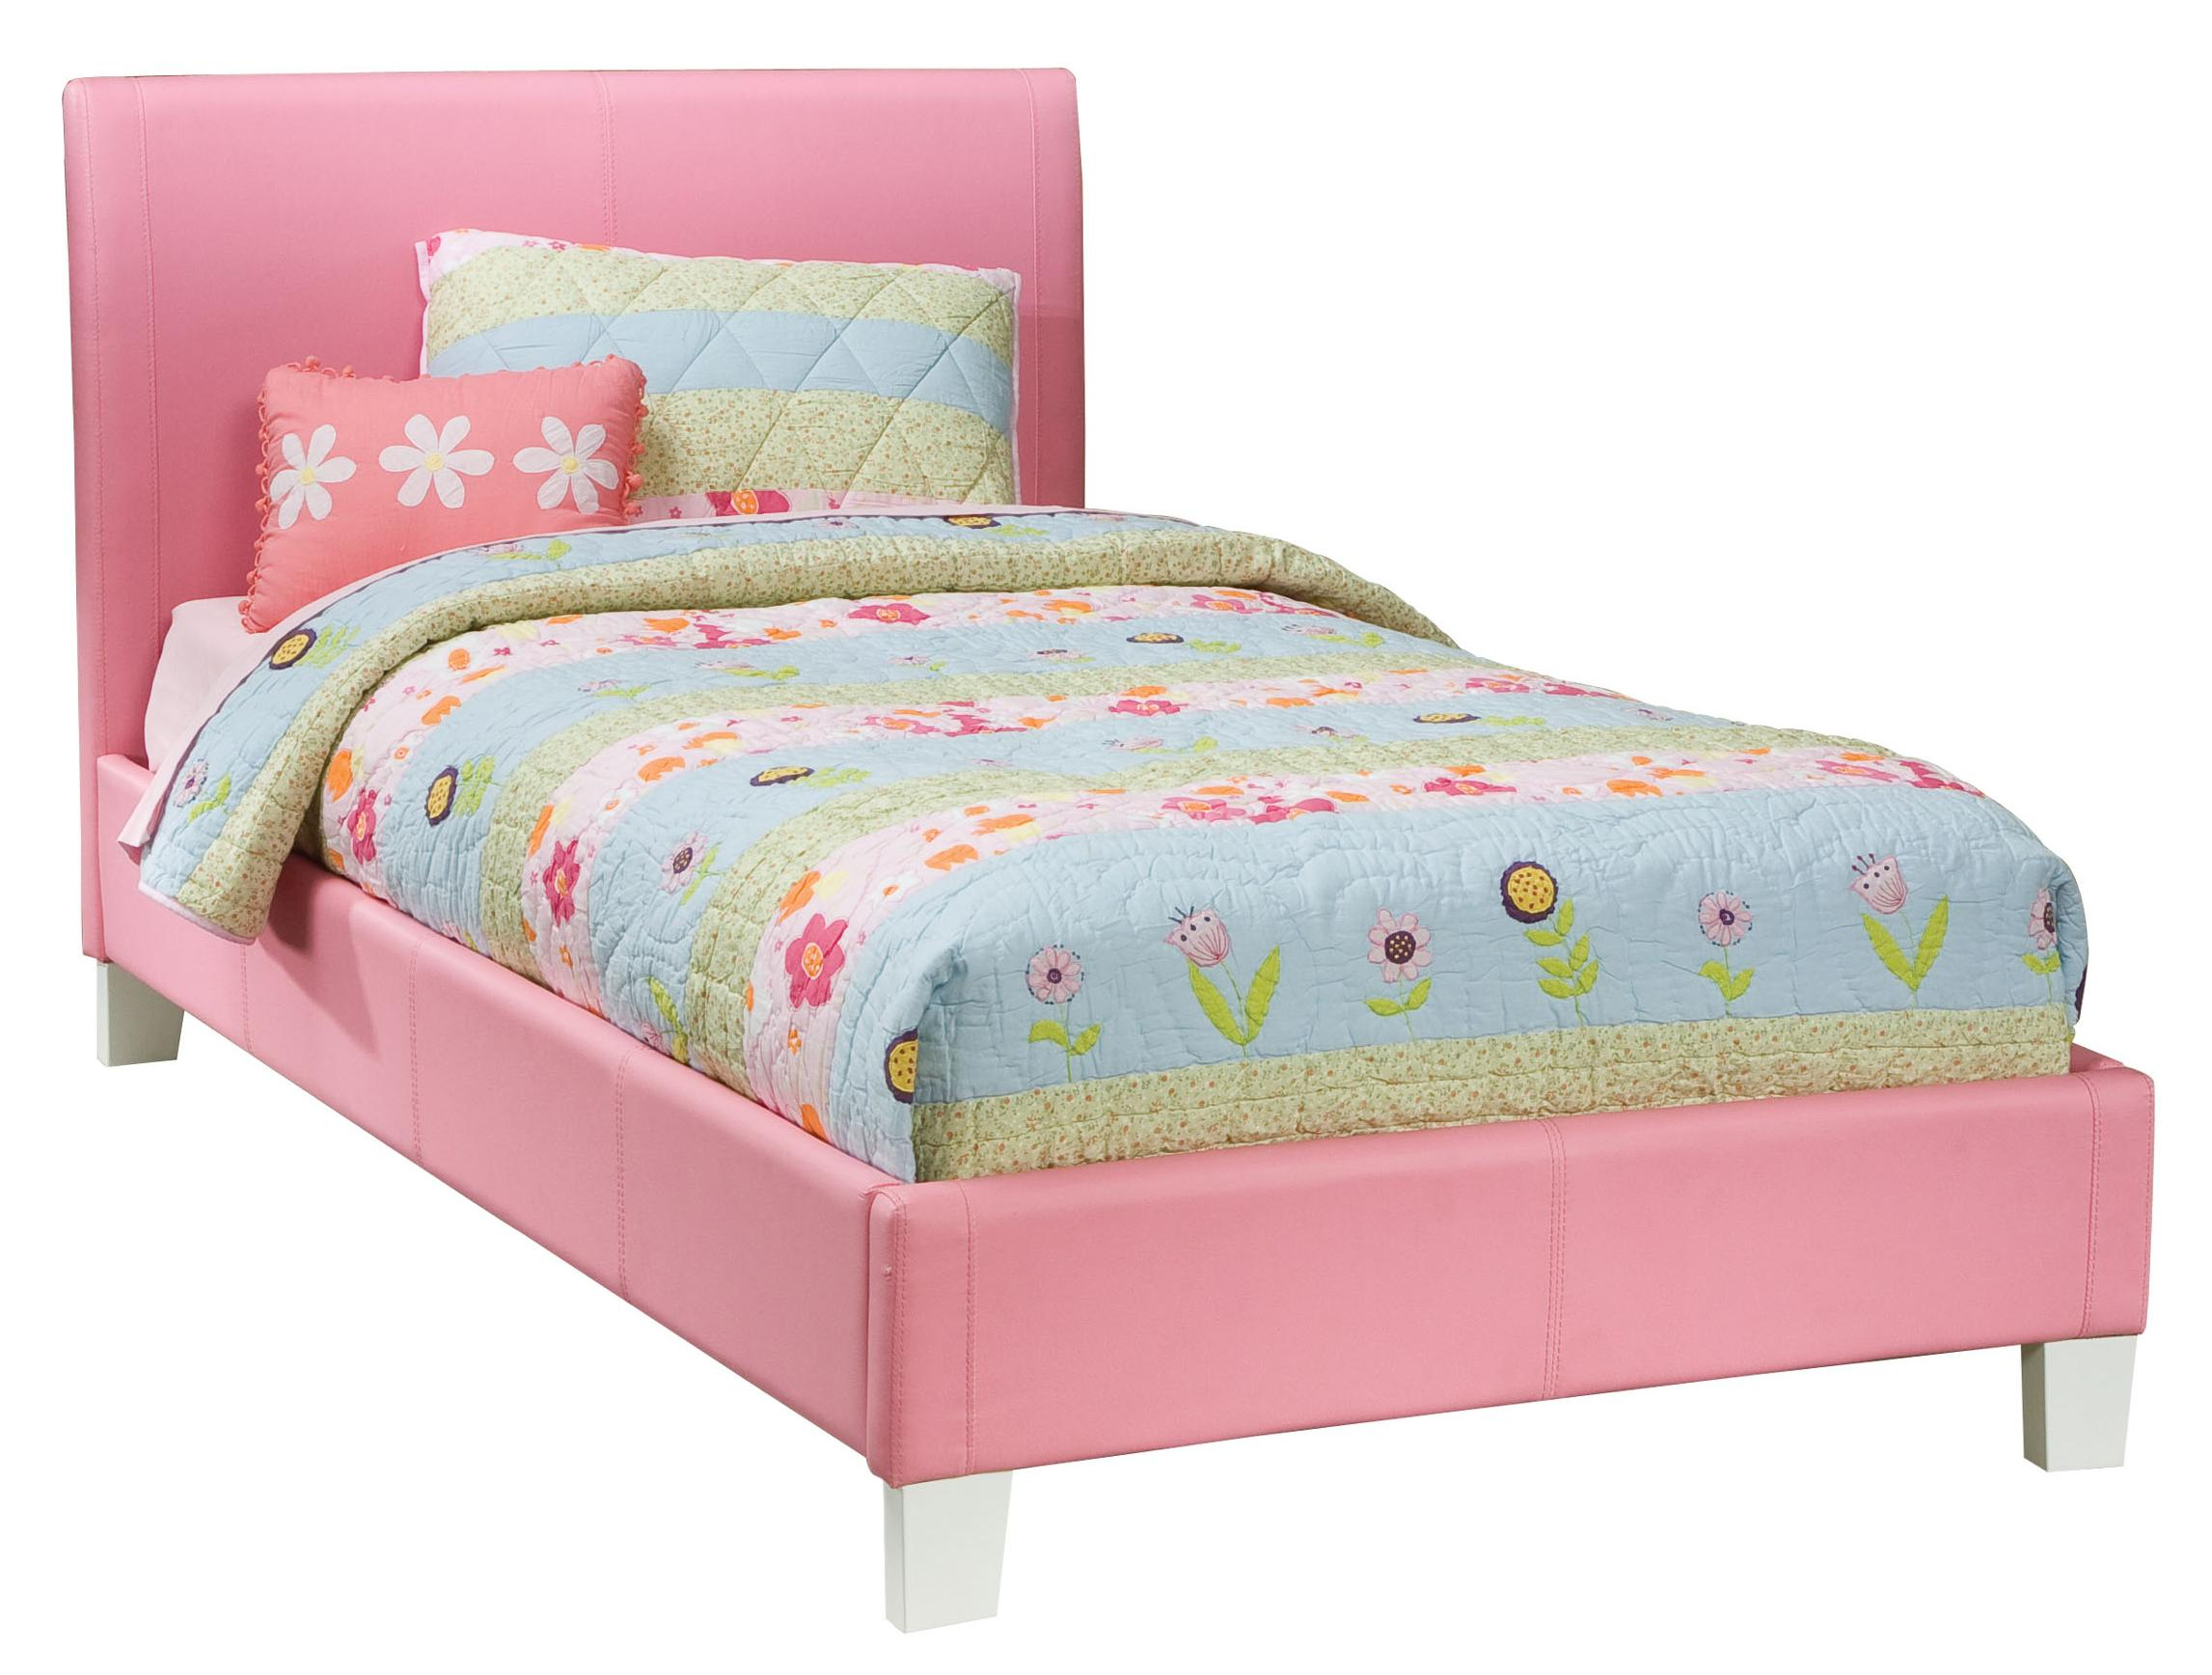 Full Upholstered Youth Bed By Standard Furniture Wolf